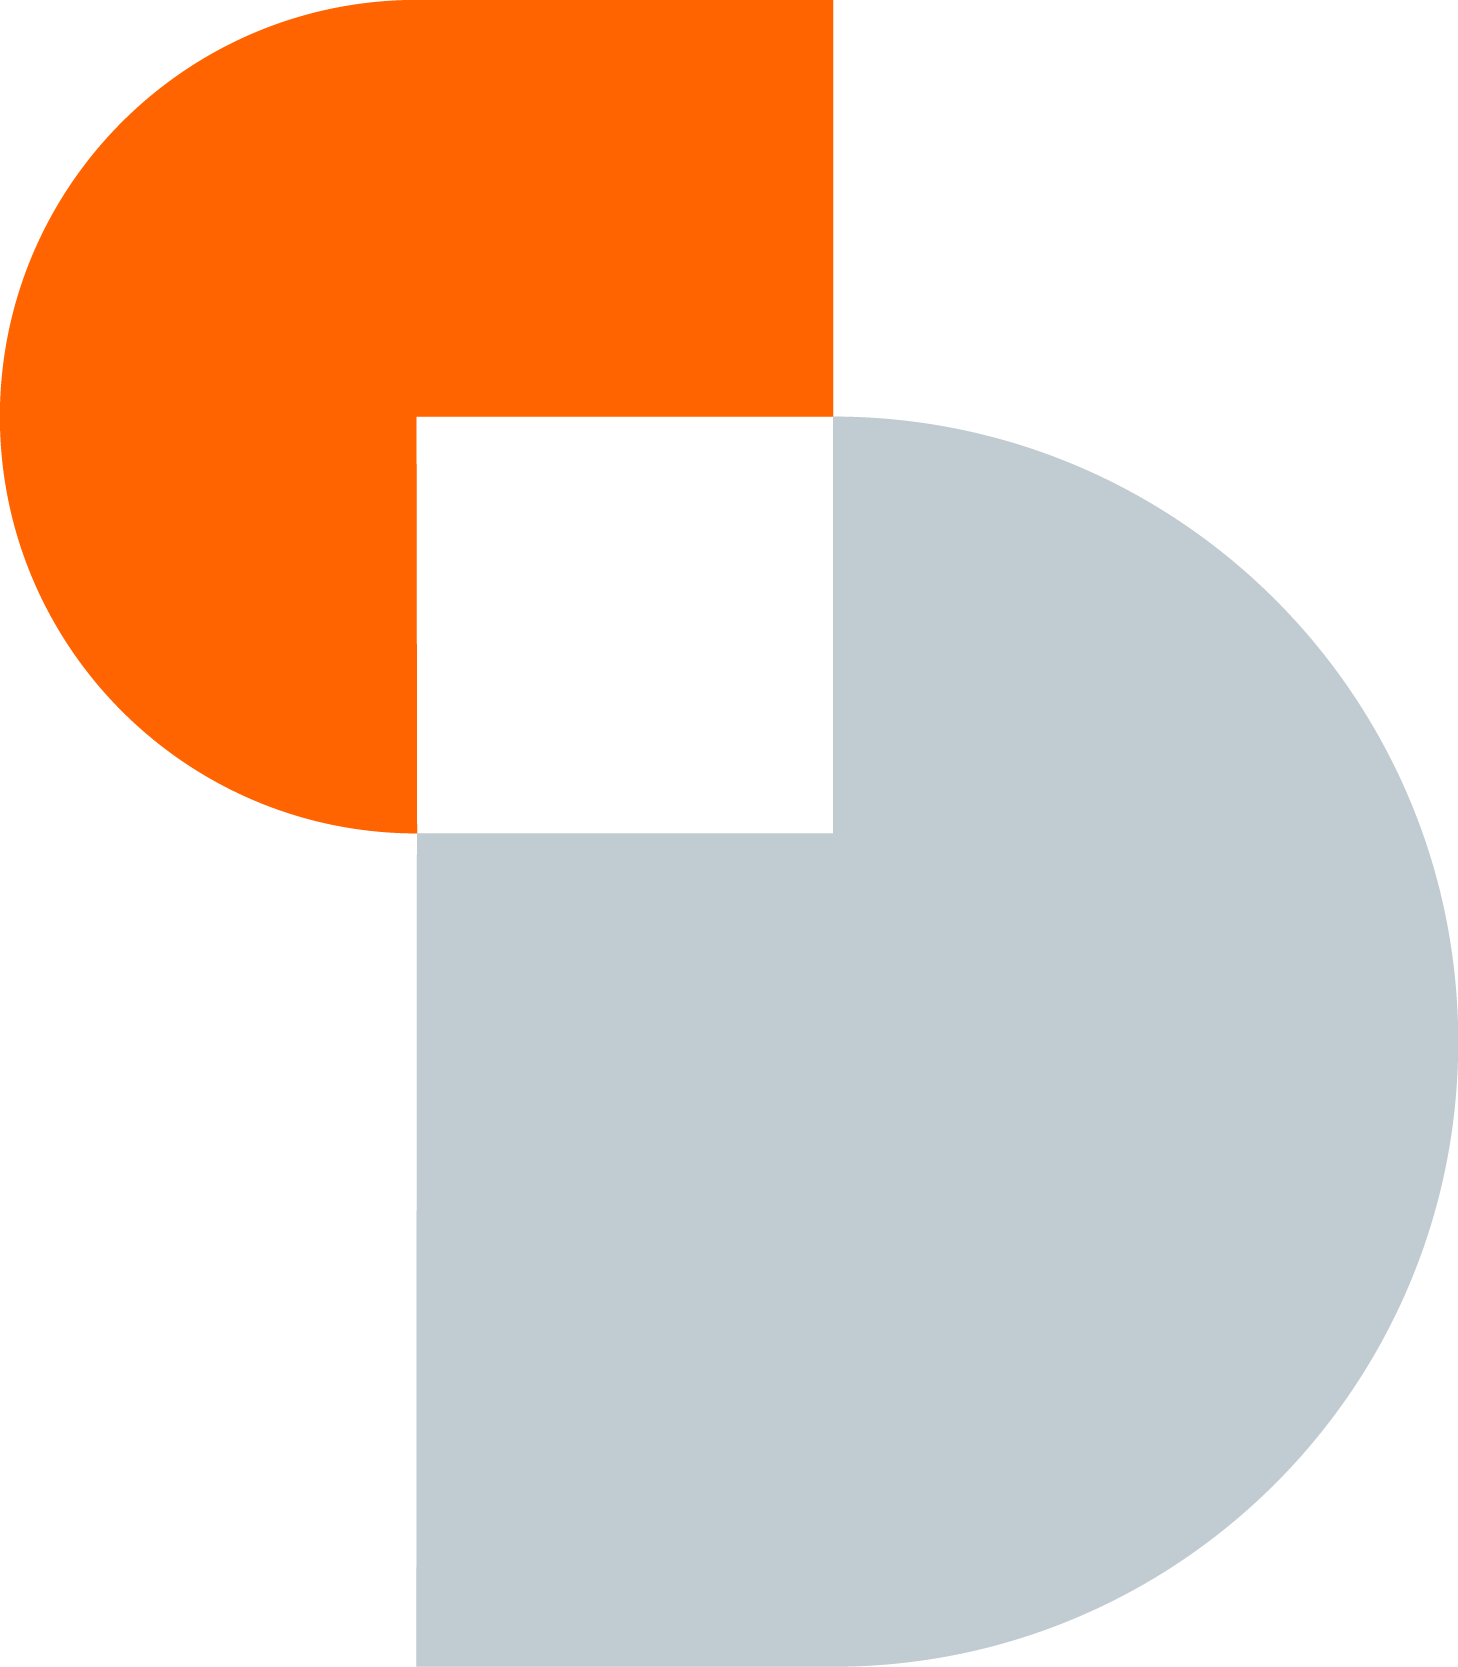 Digiseq_Icon_OrangeDark[45894] (1).png